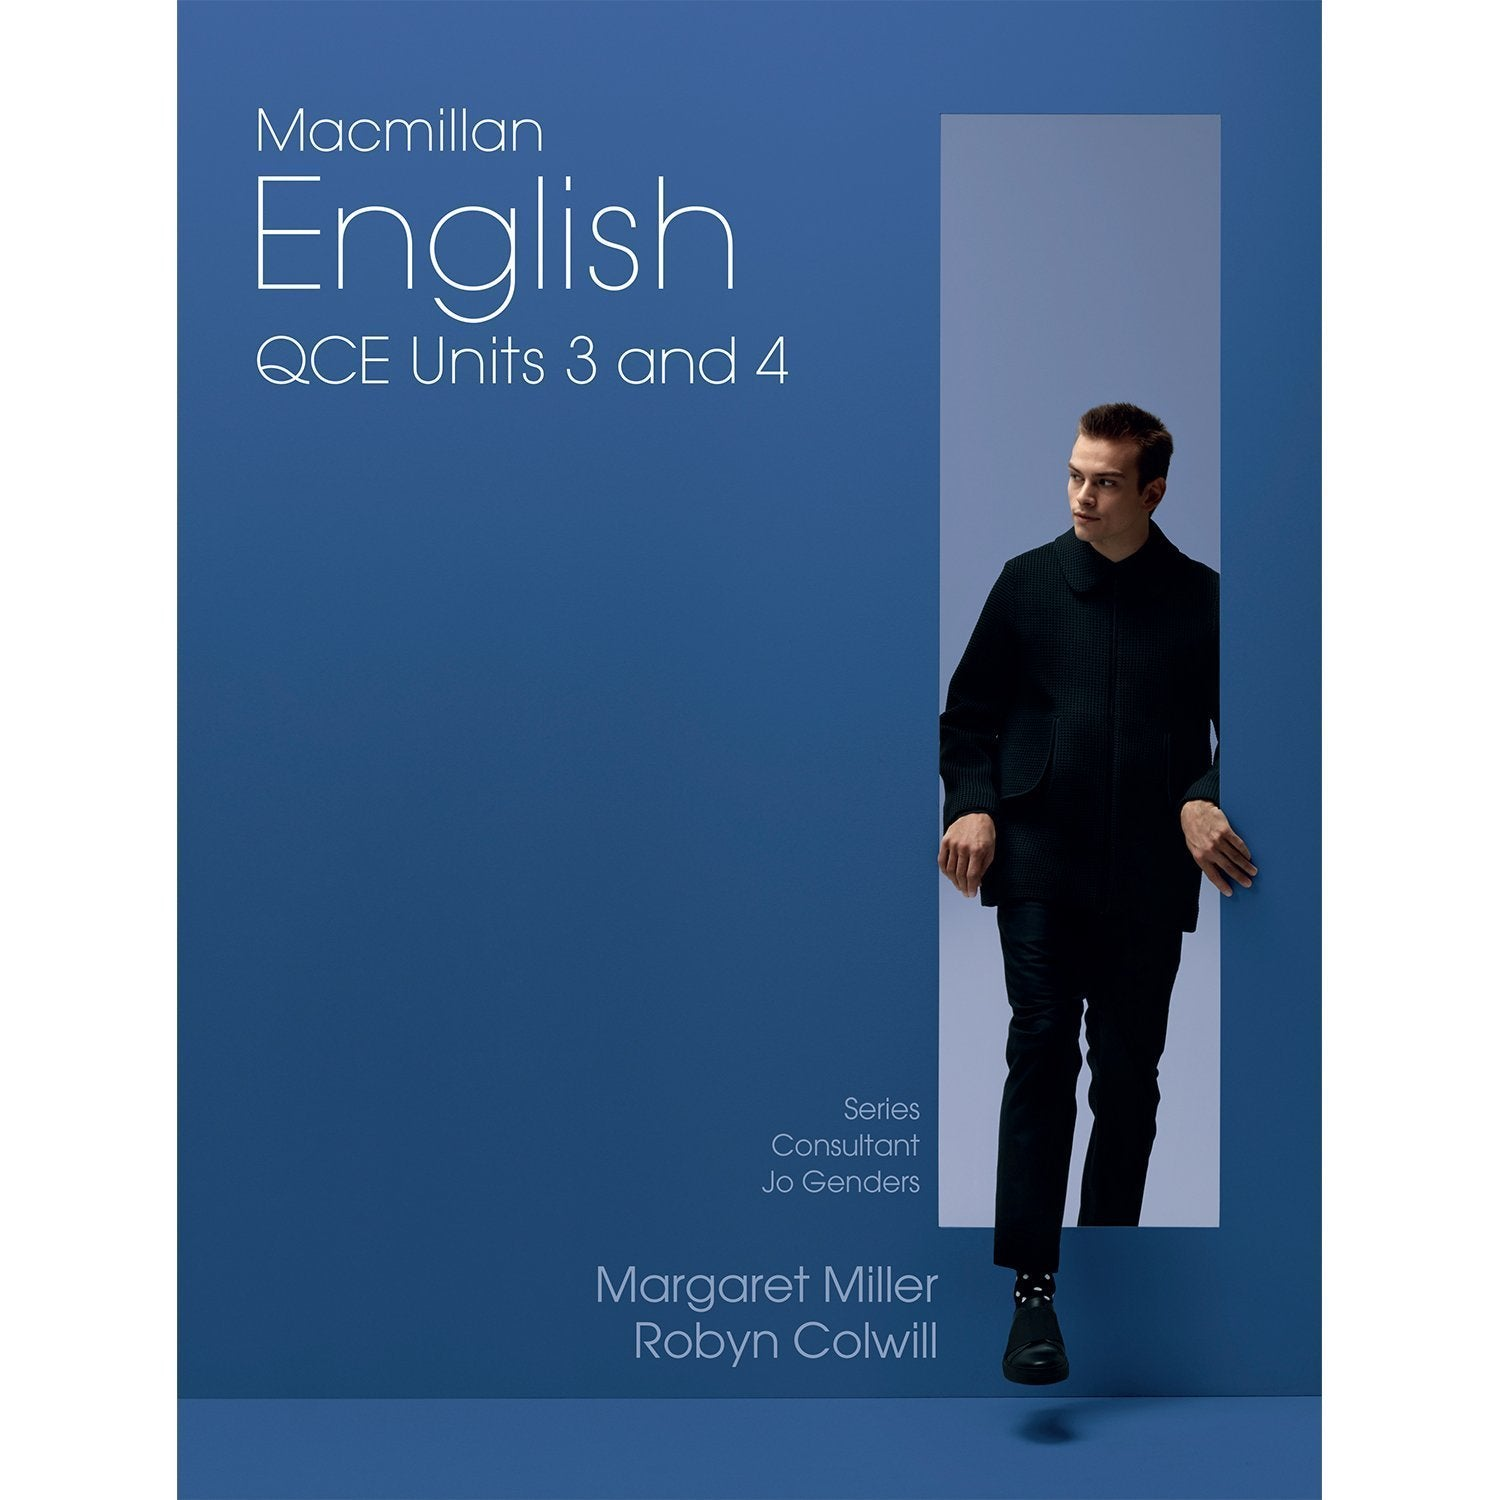 Macmillan English QCE Units 3&4 Student Book + Digital